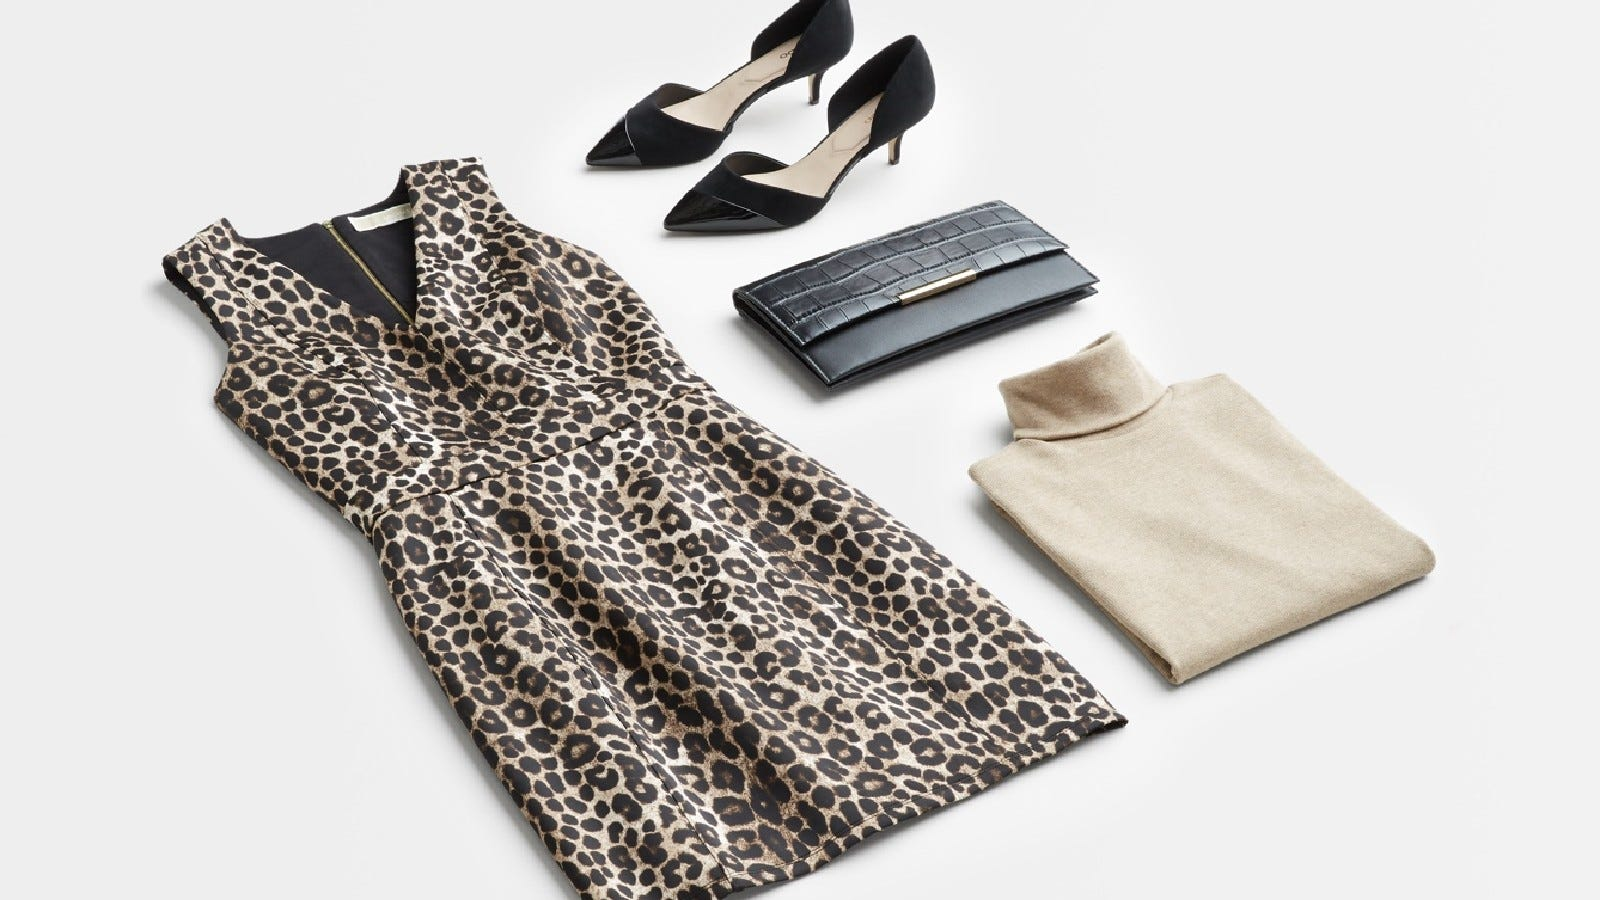 An example outfit from Stitchfix.